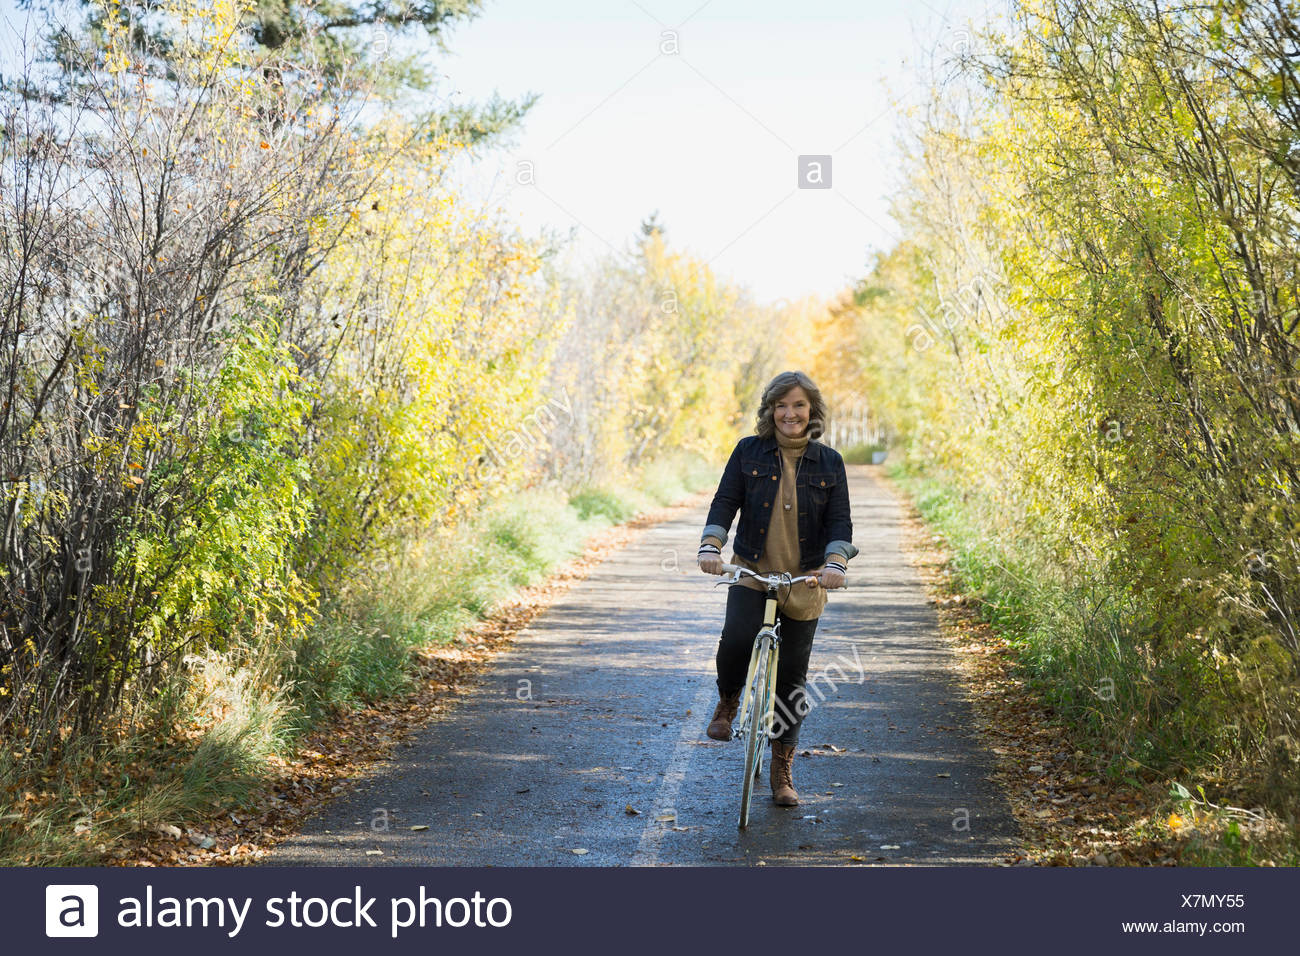 Woman bike riding on autumn path in park - Stock Image